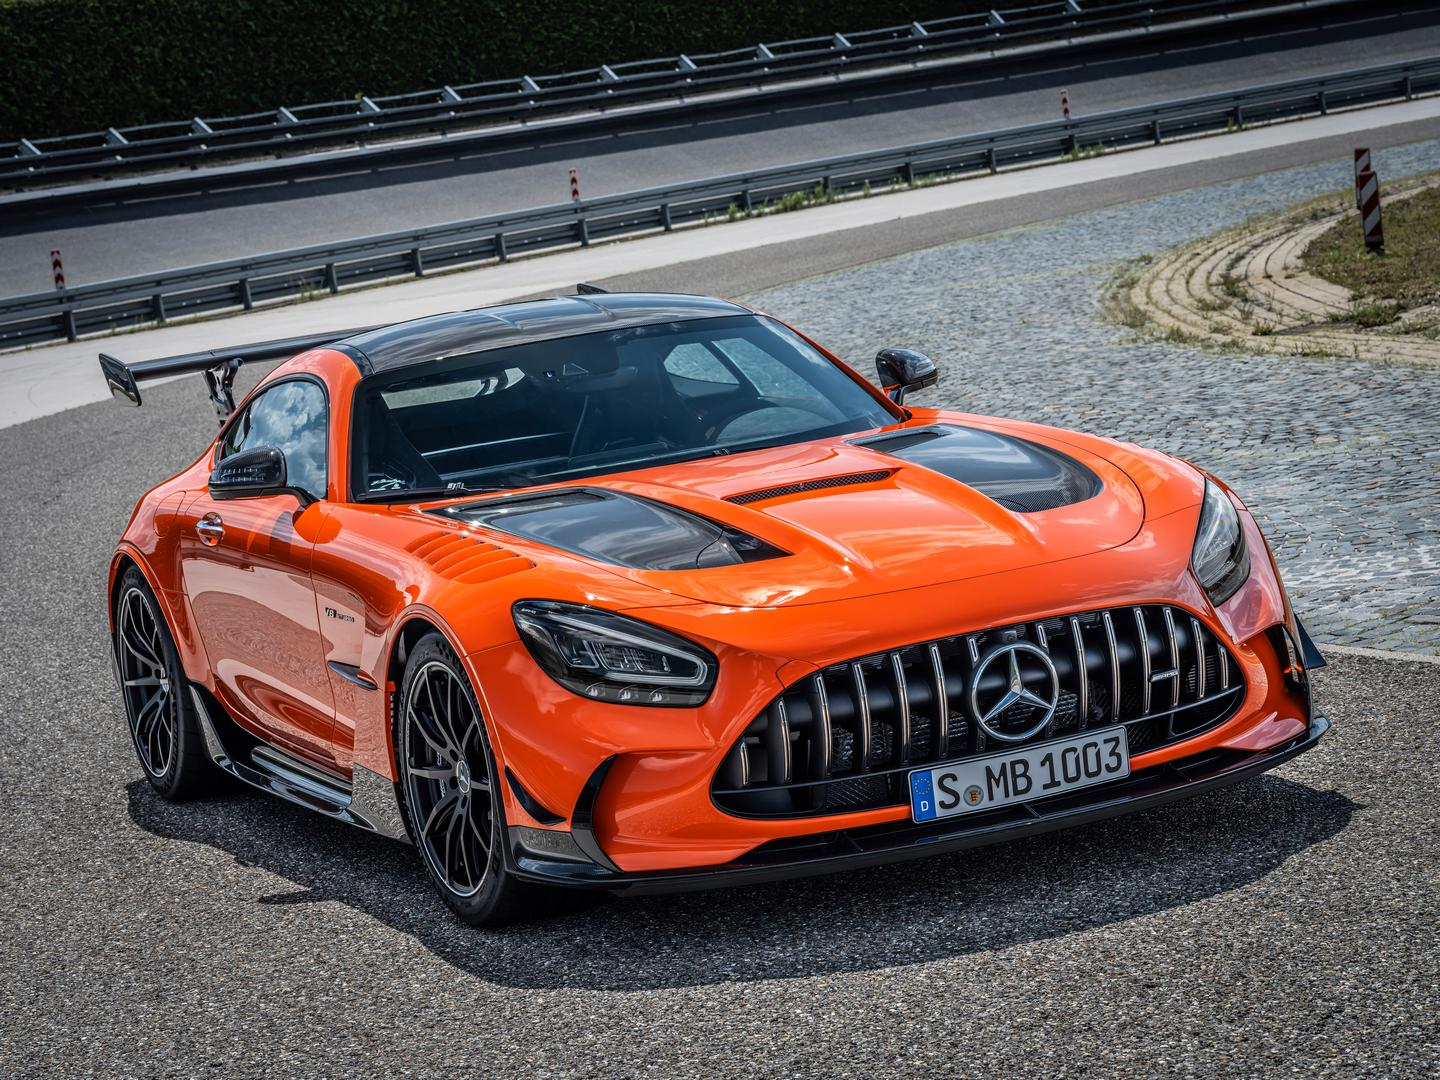 Mercedes-AMG GT Black Series Nurburgring Lap Record